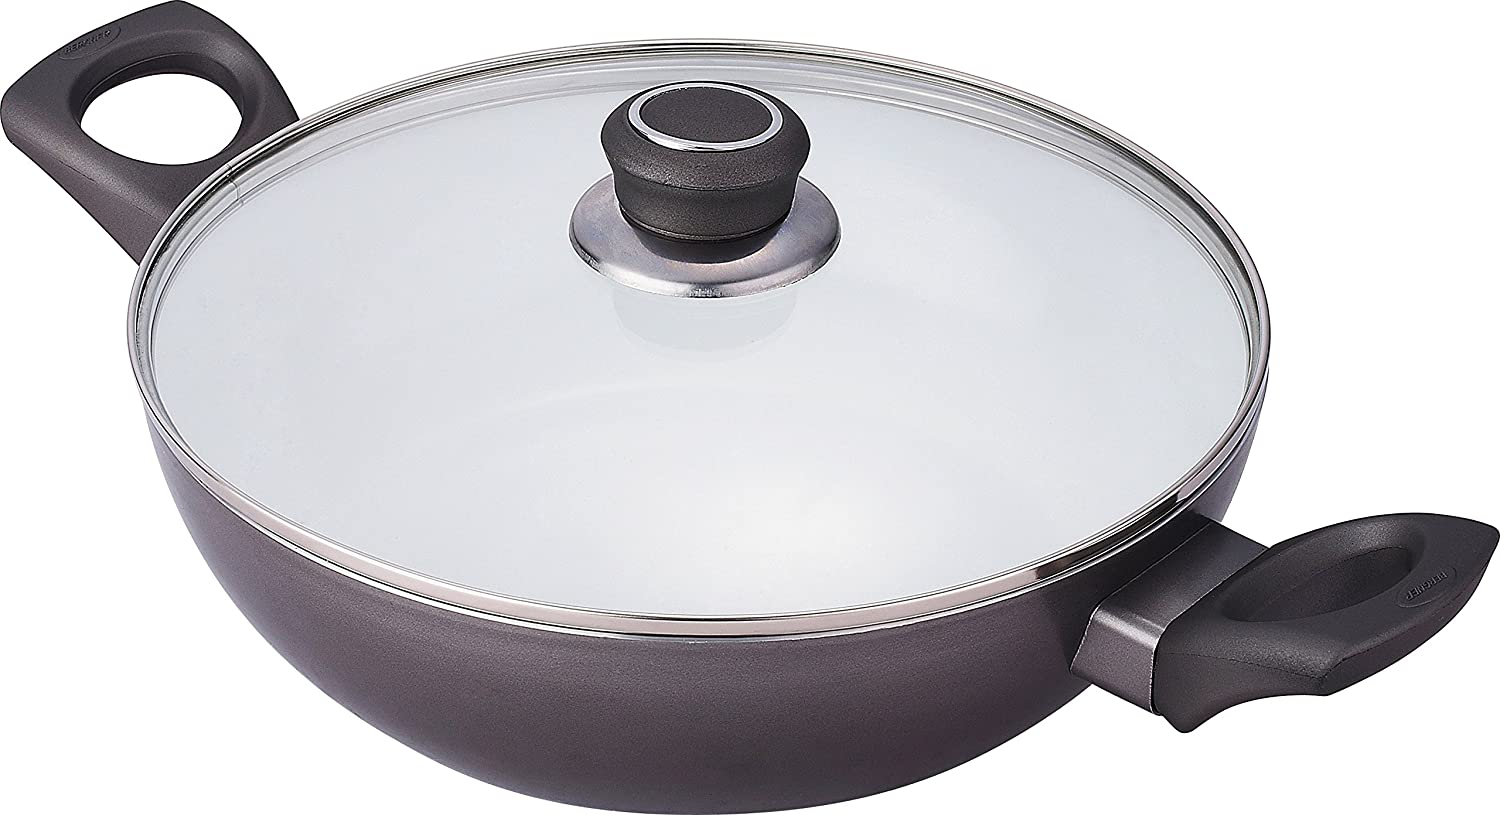 Bergner Simplicia Ø 24cm Ceramic Coated Wok / Deep Stir-Fry Pan with Glass Lid, Induction Base, and Two Handles - BG-6651